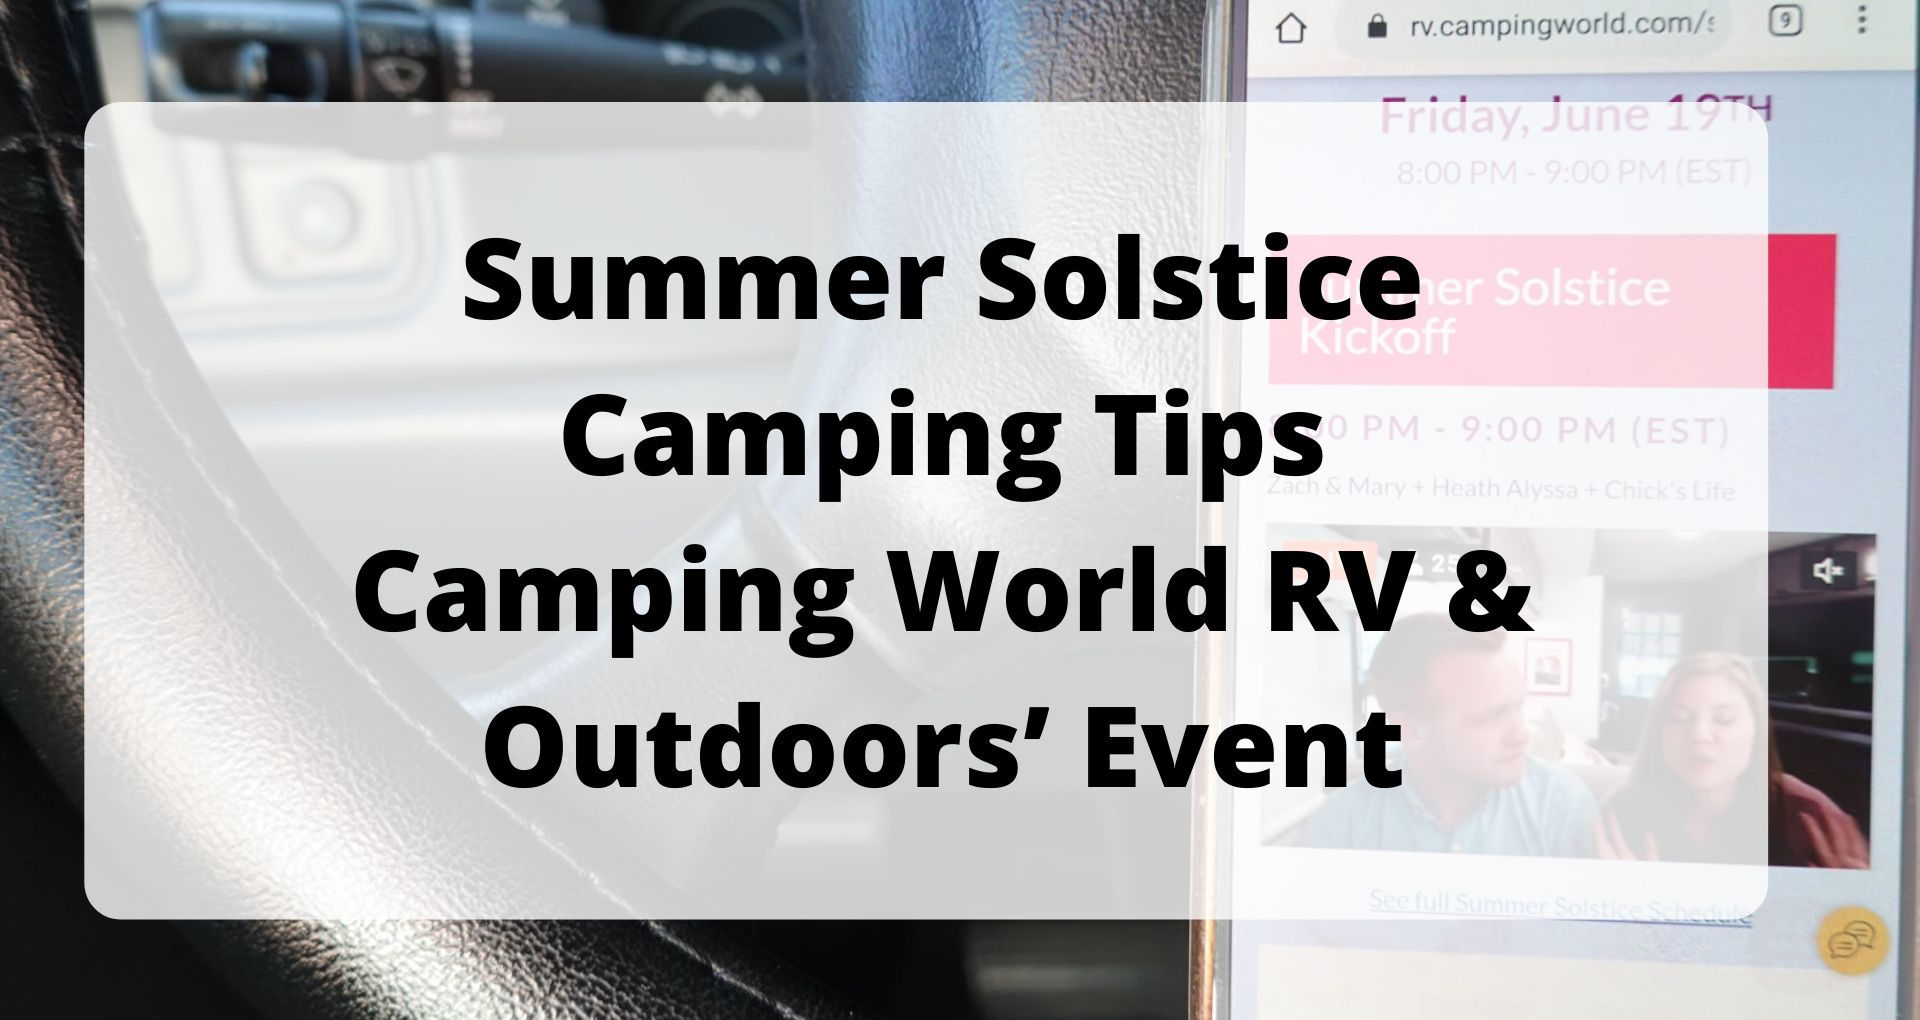 Summer Solstice Camping Tips Camping World RV & Outdoors' Event